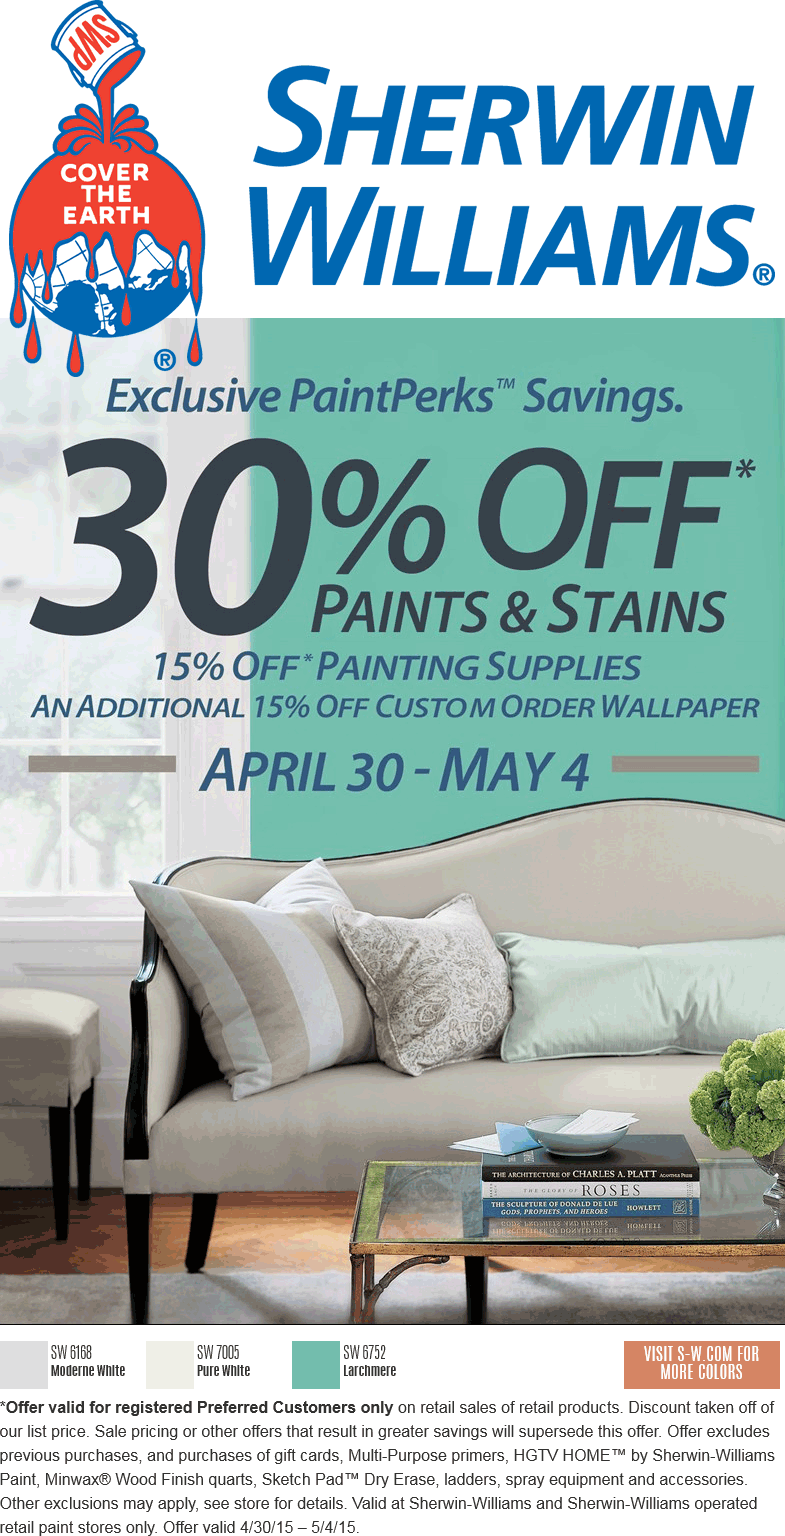 Sherwin Williams Coupon February 2017 30% off paint & stains at Sherwin Williams